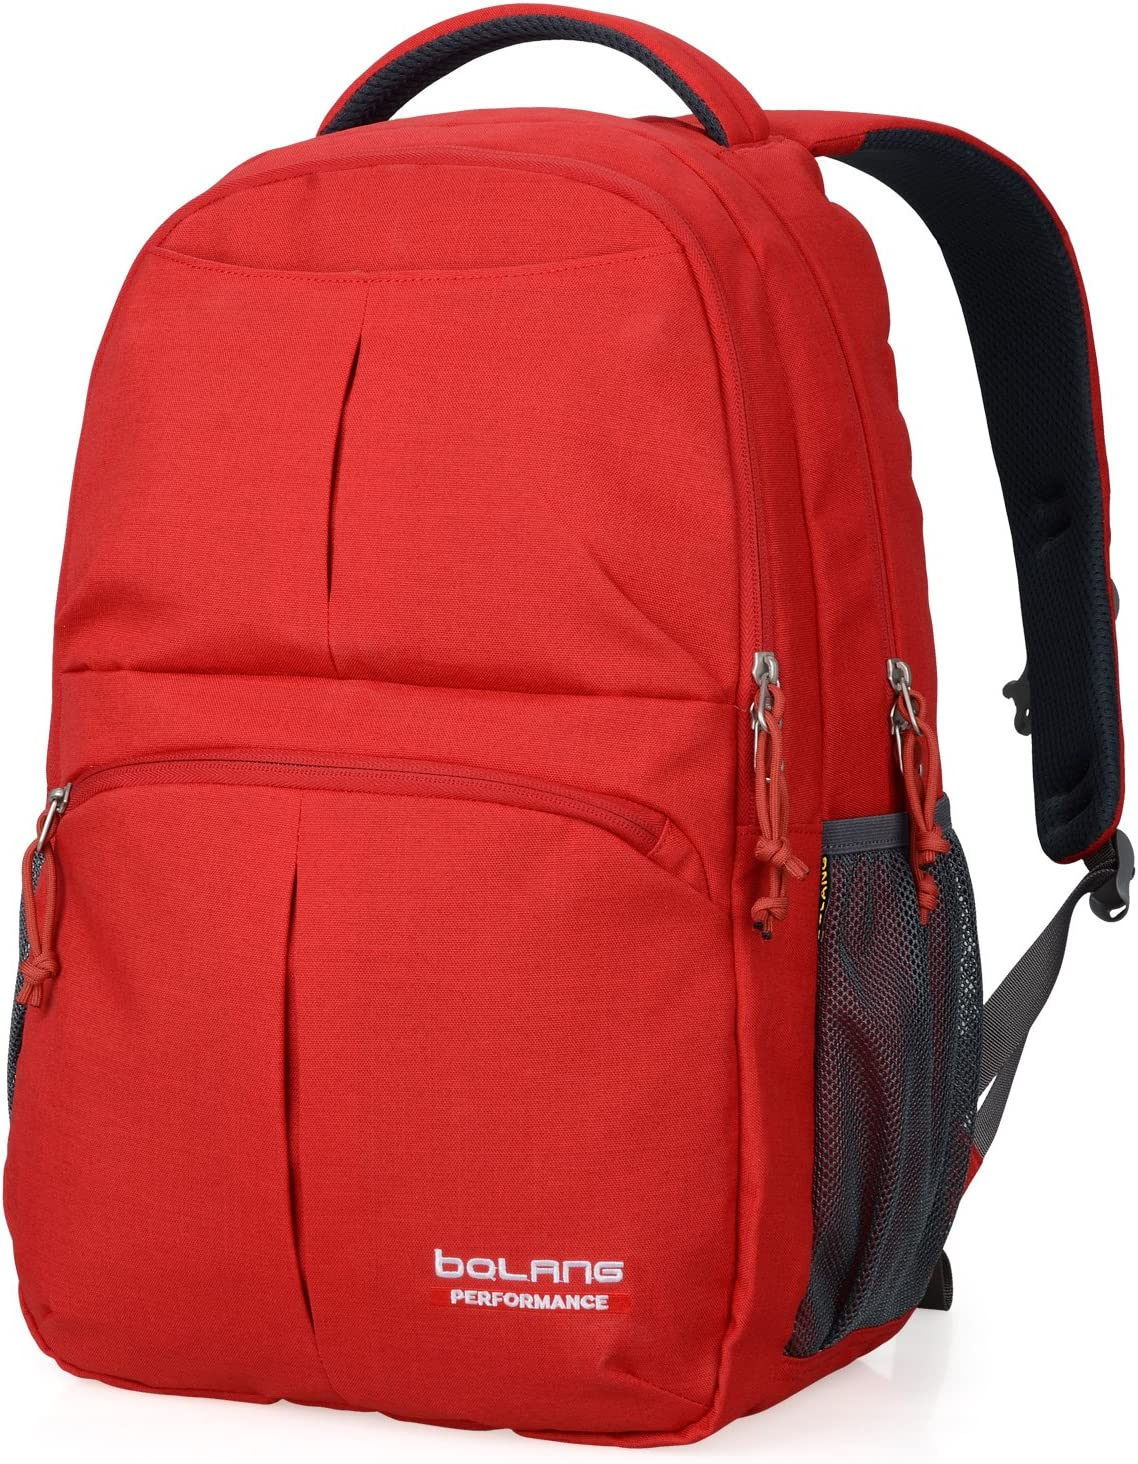 BOLANG College Backpack for Men Water Resistant Travel Backpack Women Laptop Backpacks Fits 16 inch Laptop Notebook 8459 (Bright Red)